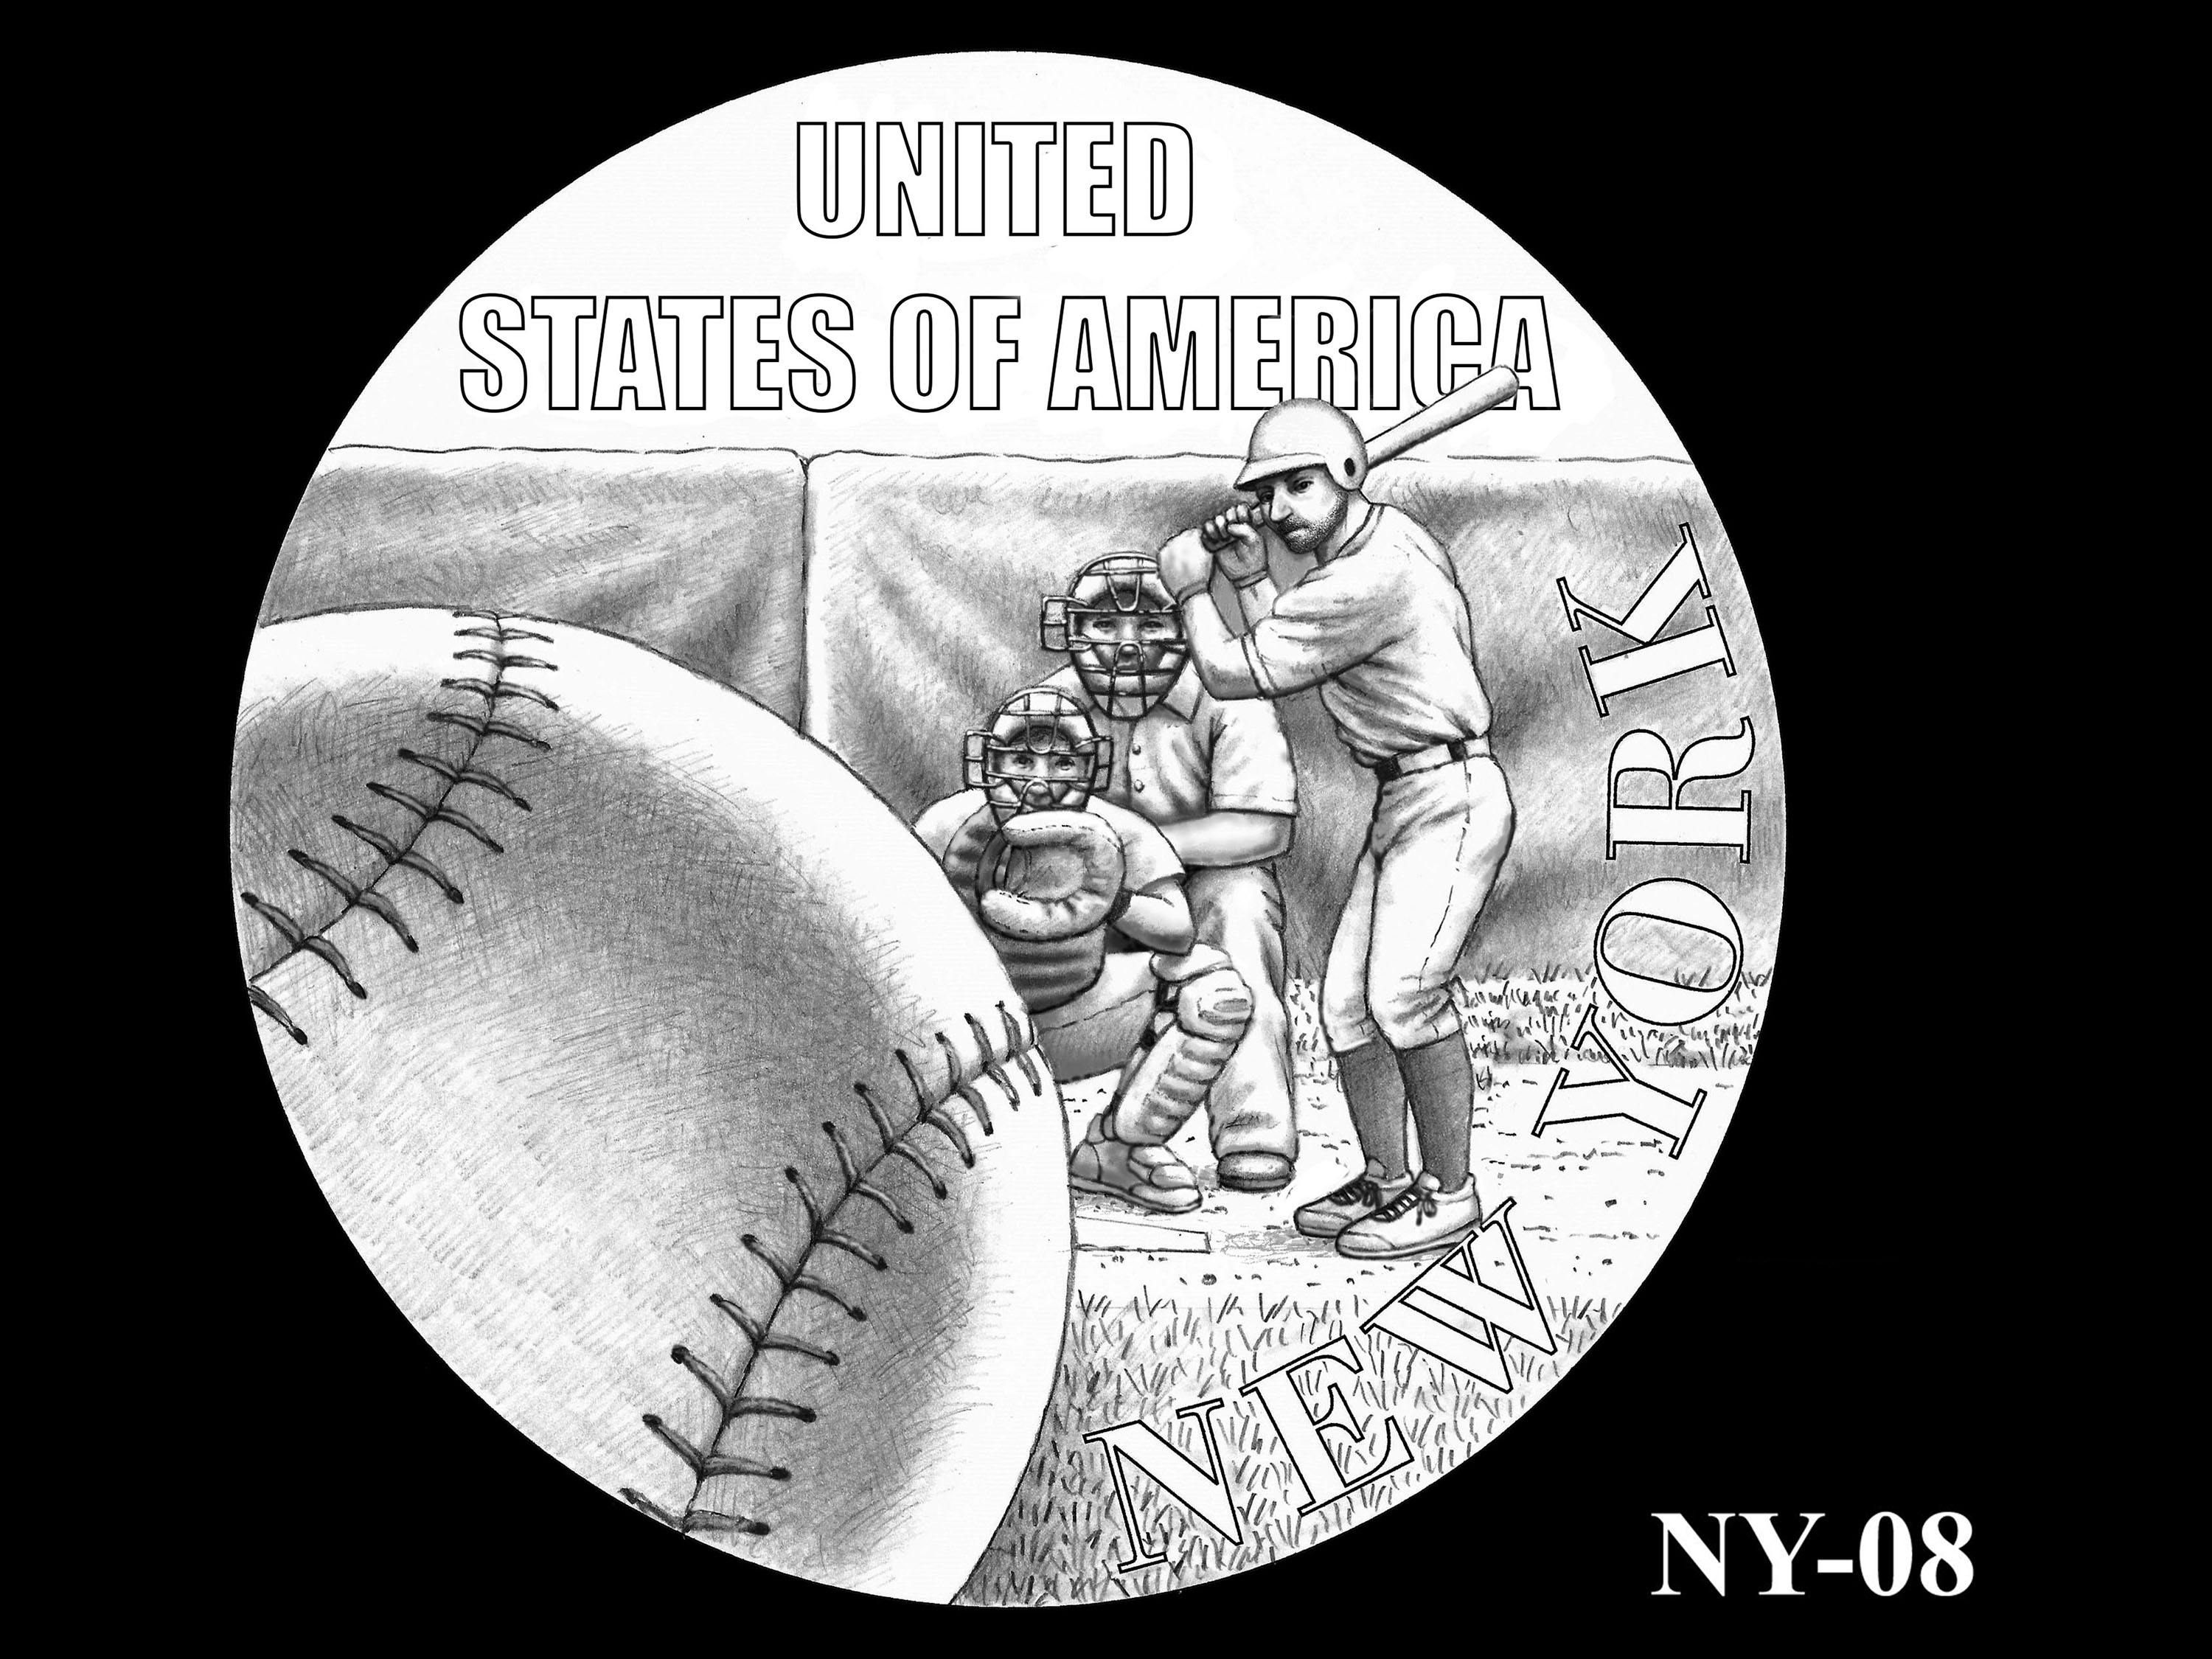 NY-08 -- 2021 American Innovation $1 Coin - New York